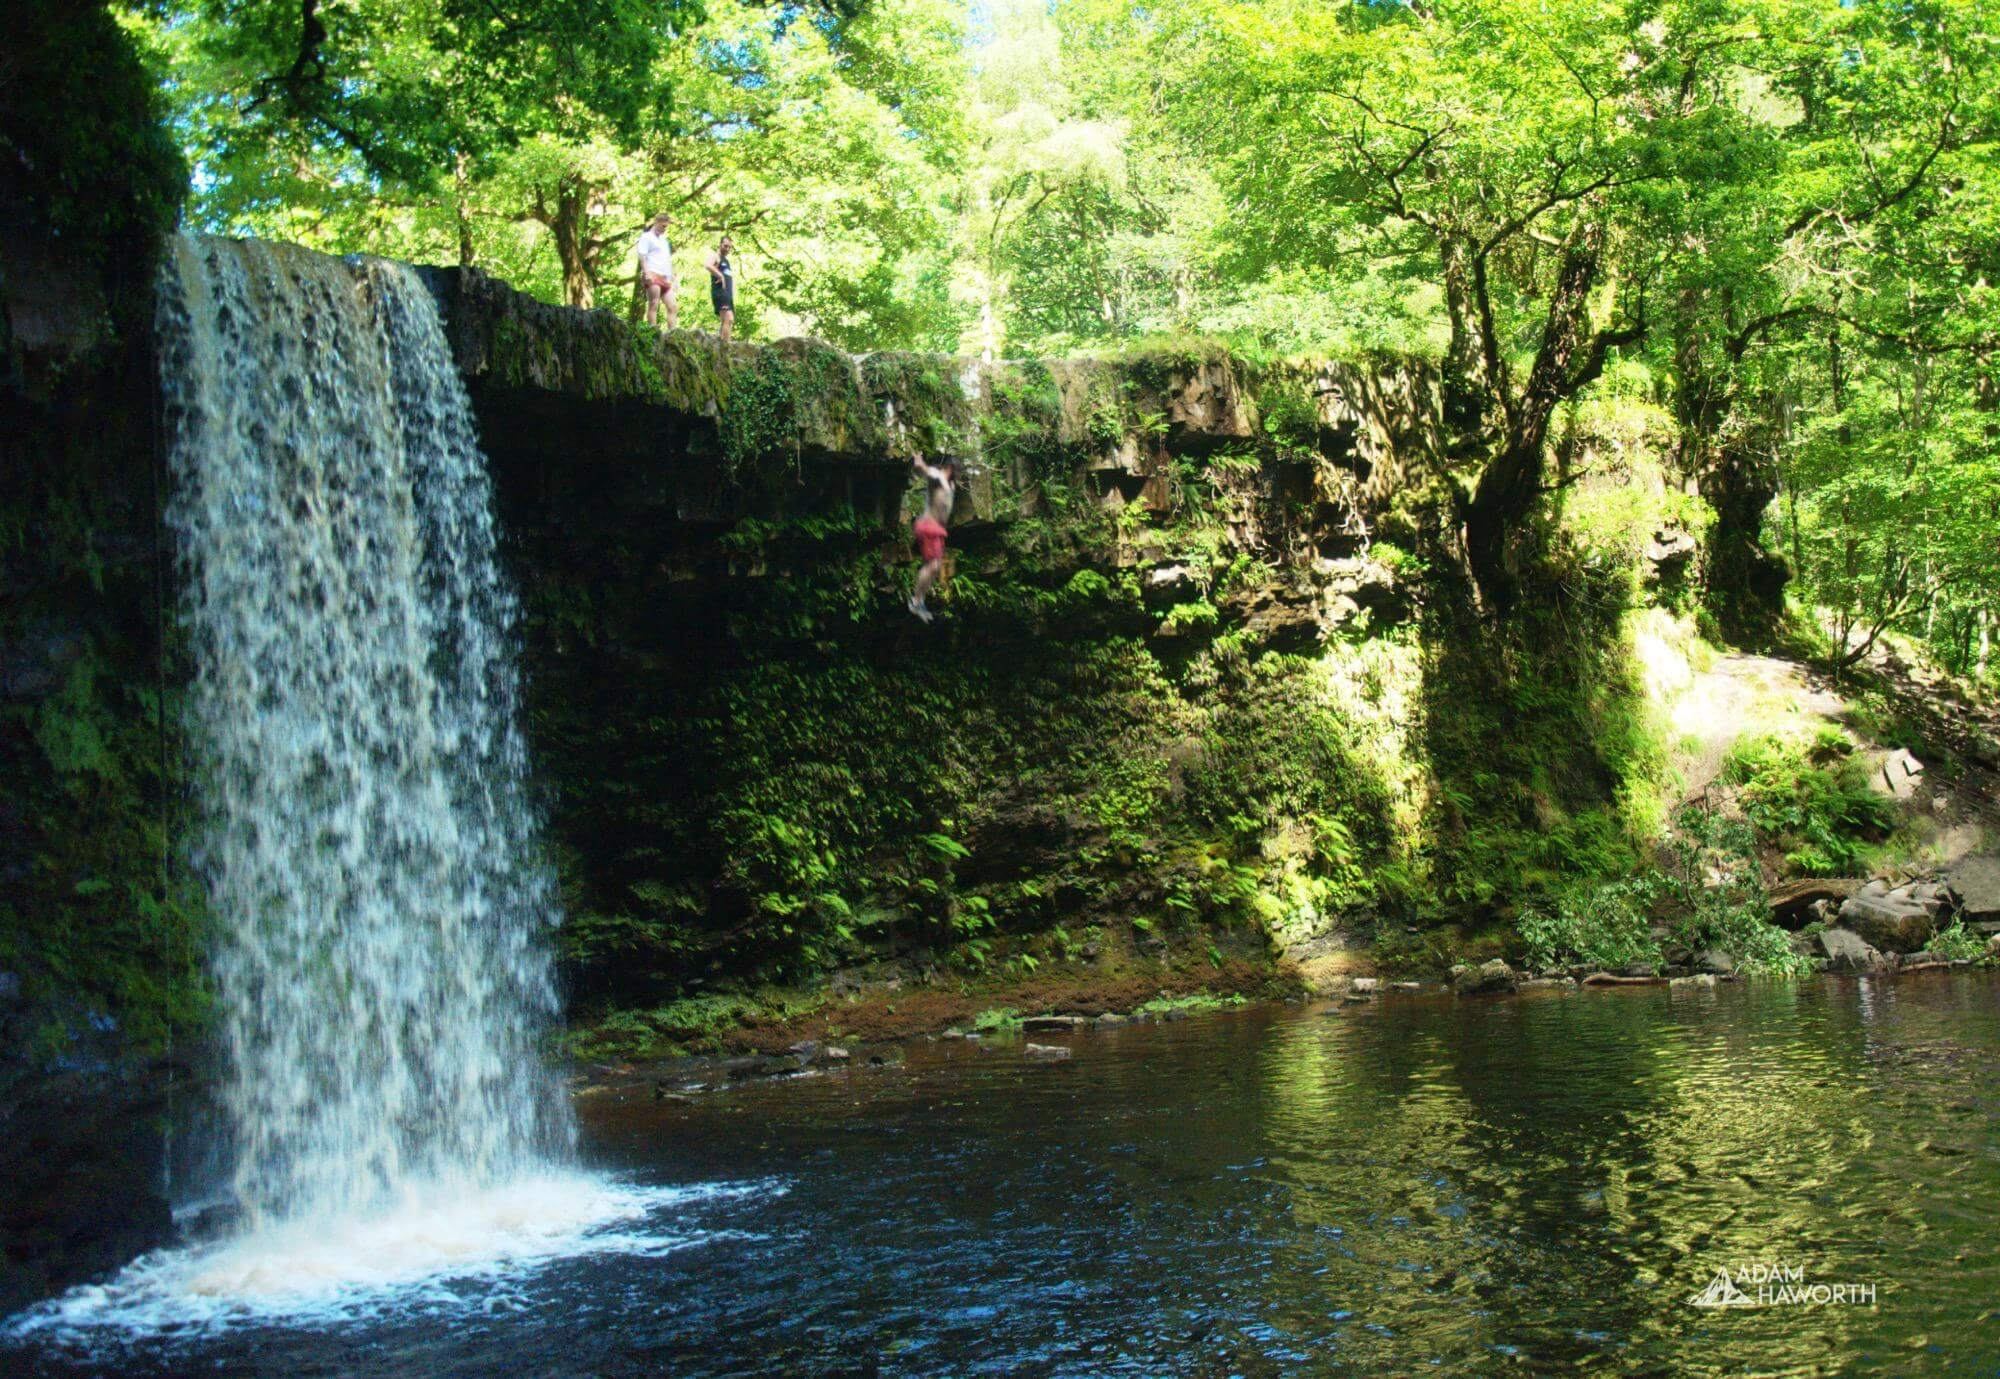 Waterfall jumping in Waterfall Country, Brecon Beacons